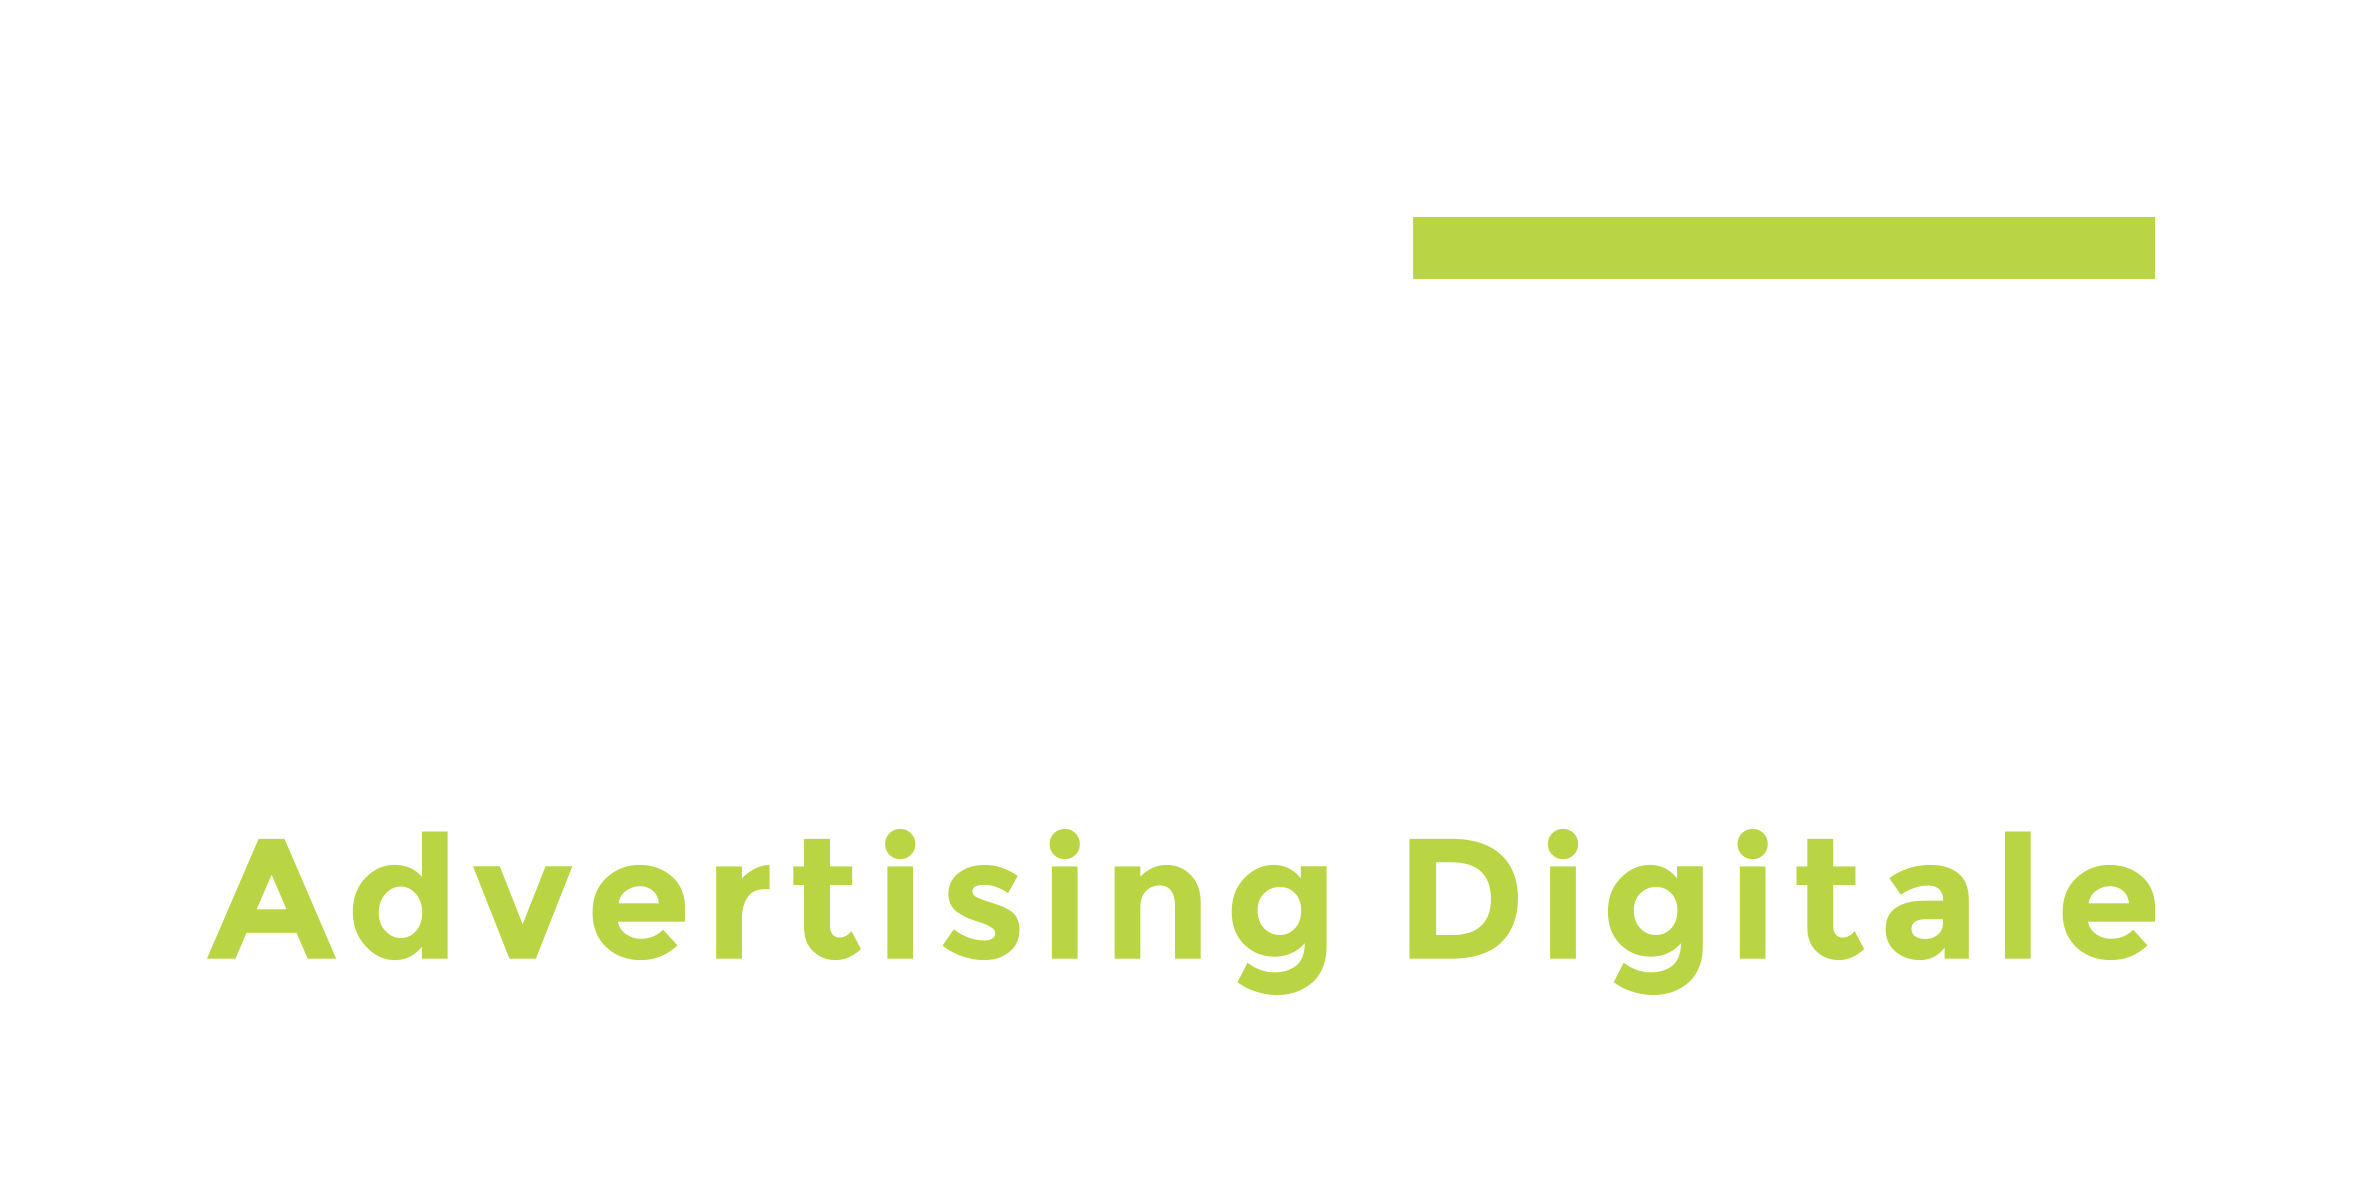 Adhoc advertising digitale logo